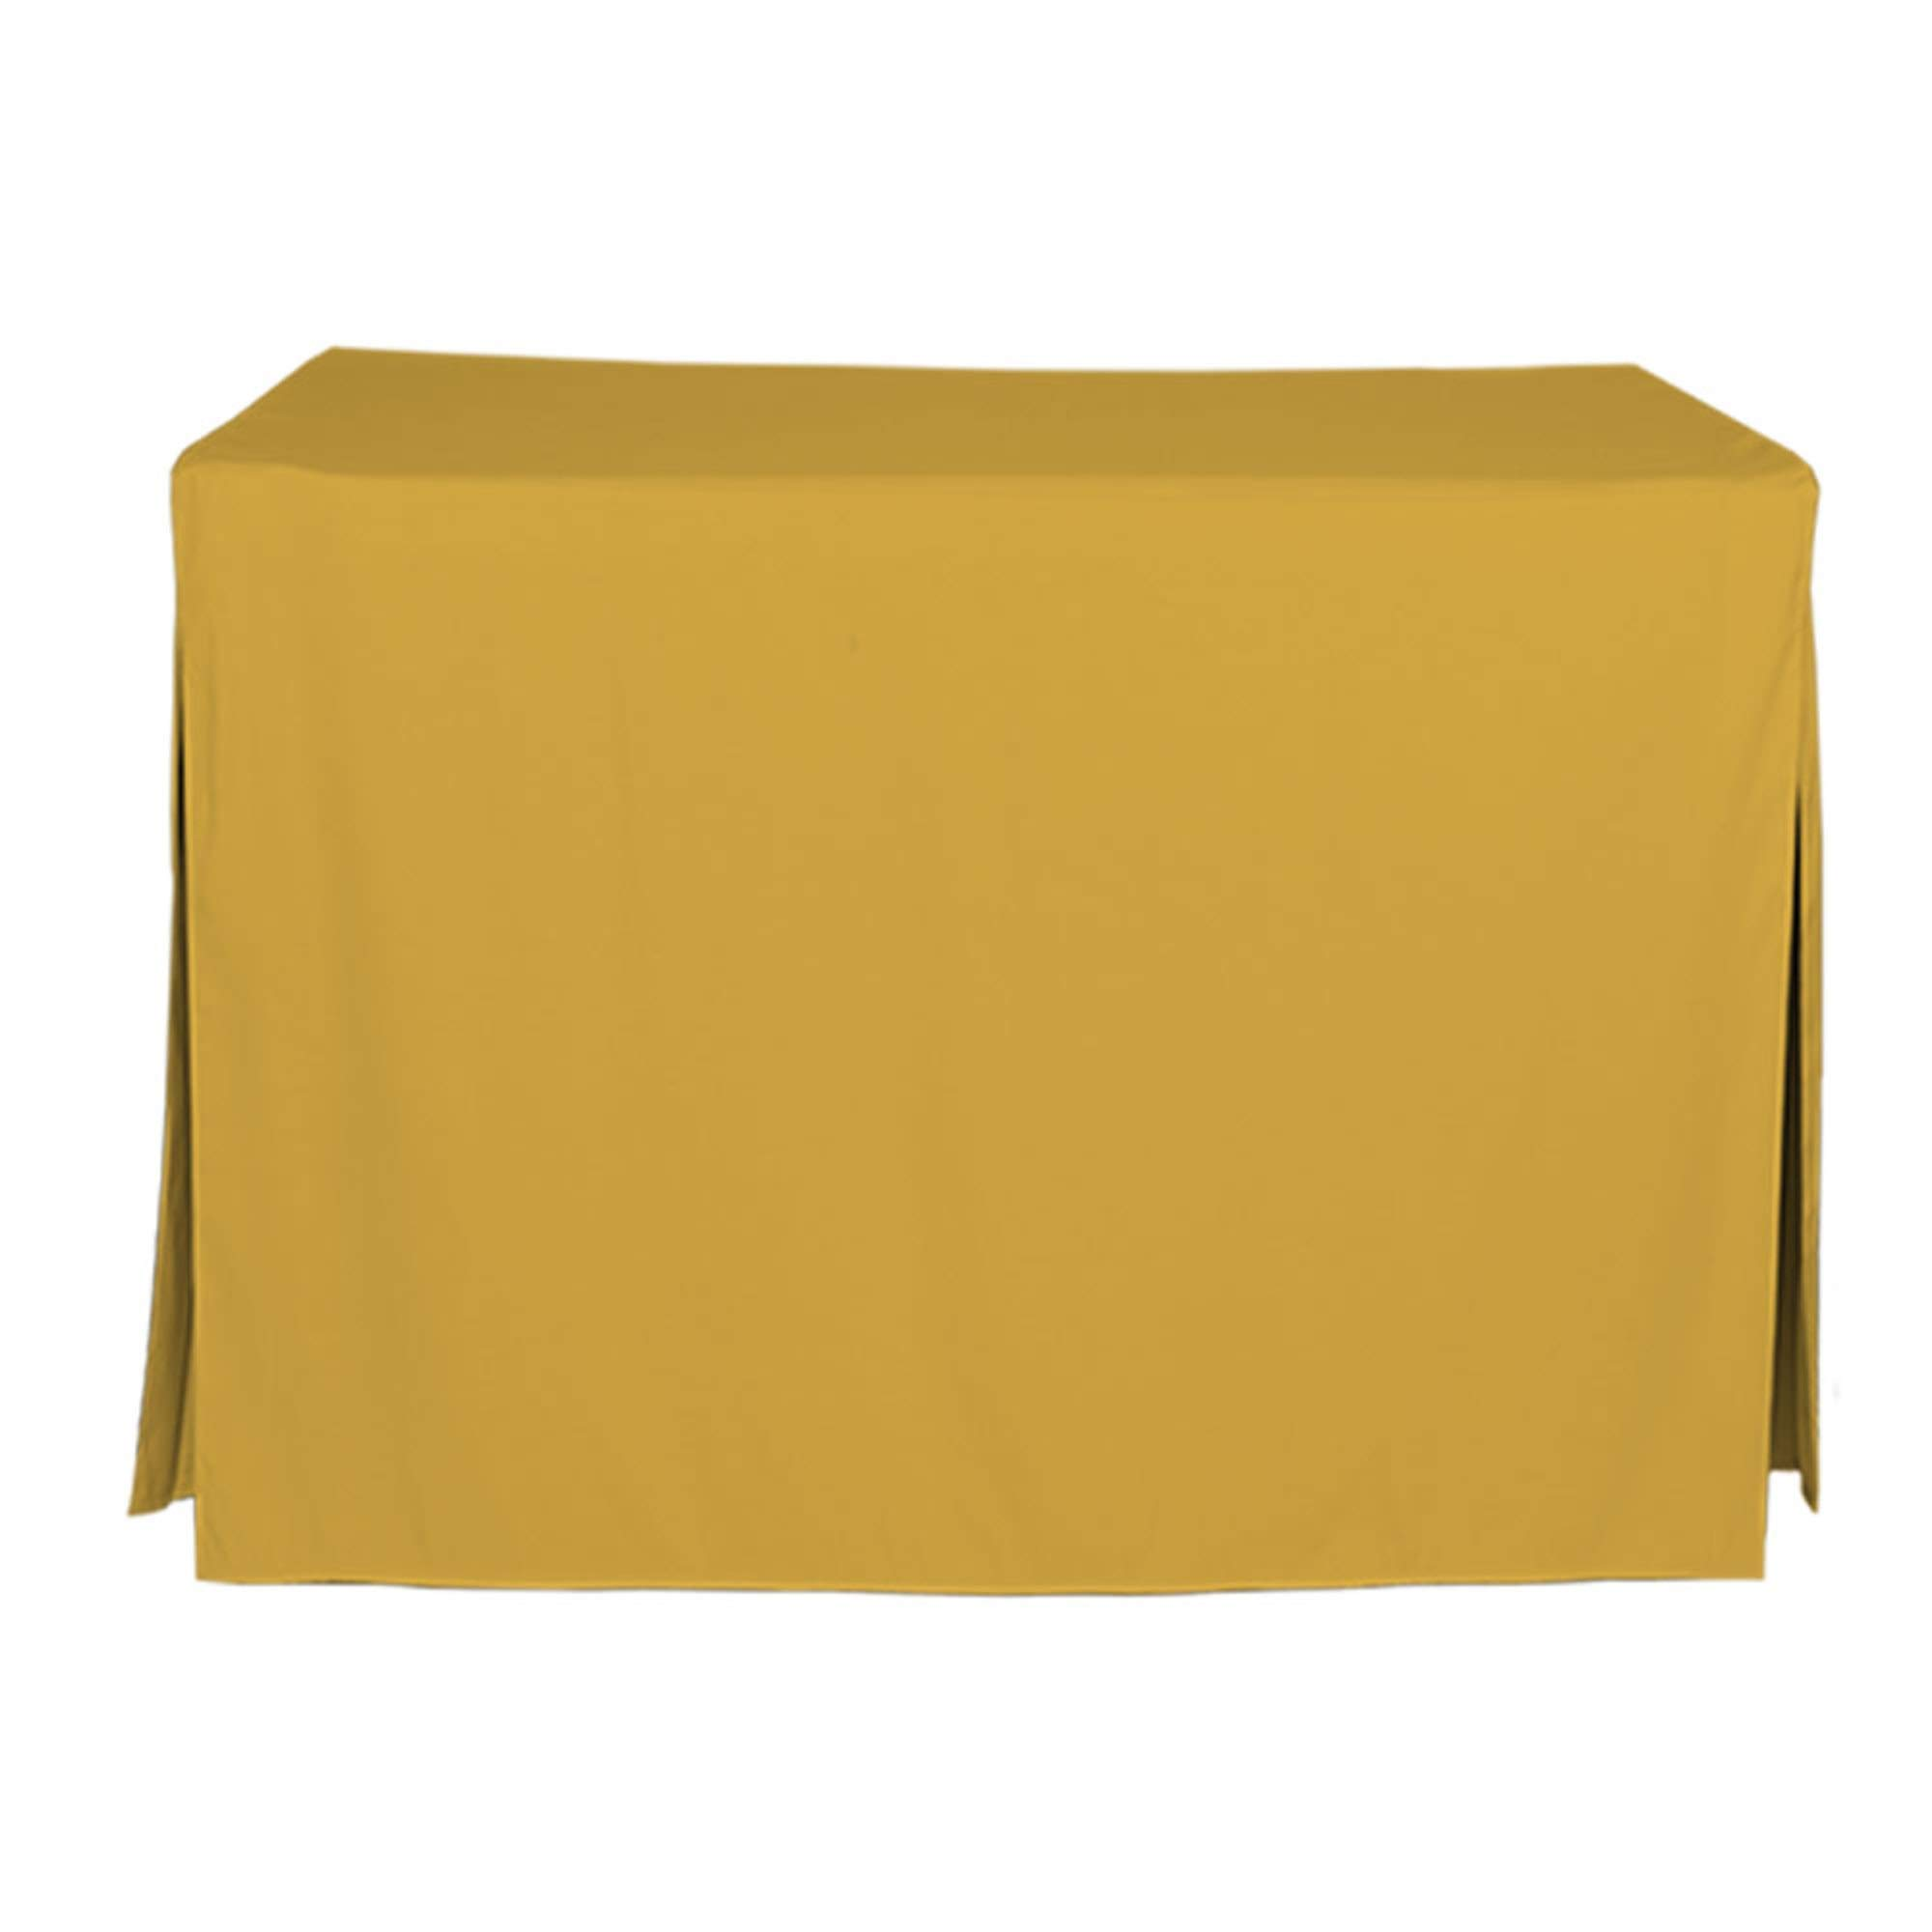 Tablevogue Solid Table Cover, 4', Mimosa by Tablevogue